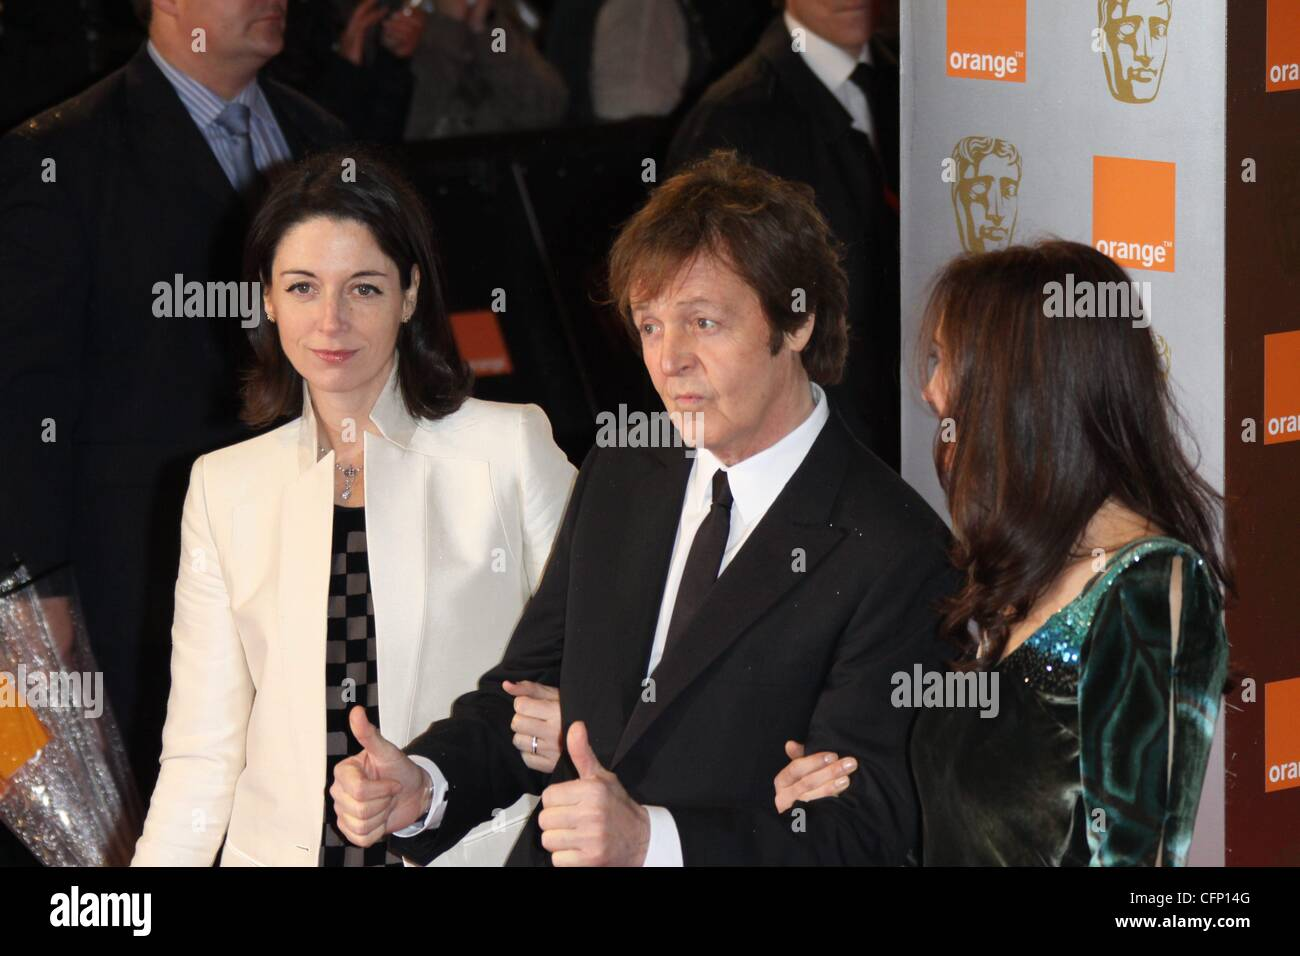 Paul McCartney And His Daughter Mary L Partner Nancy Shevel Orange British